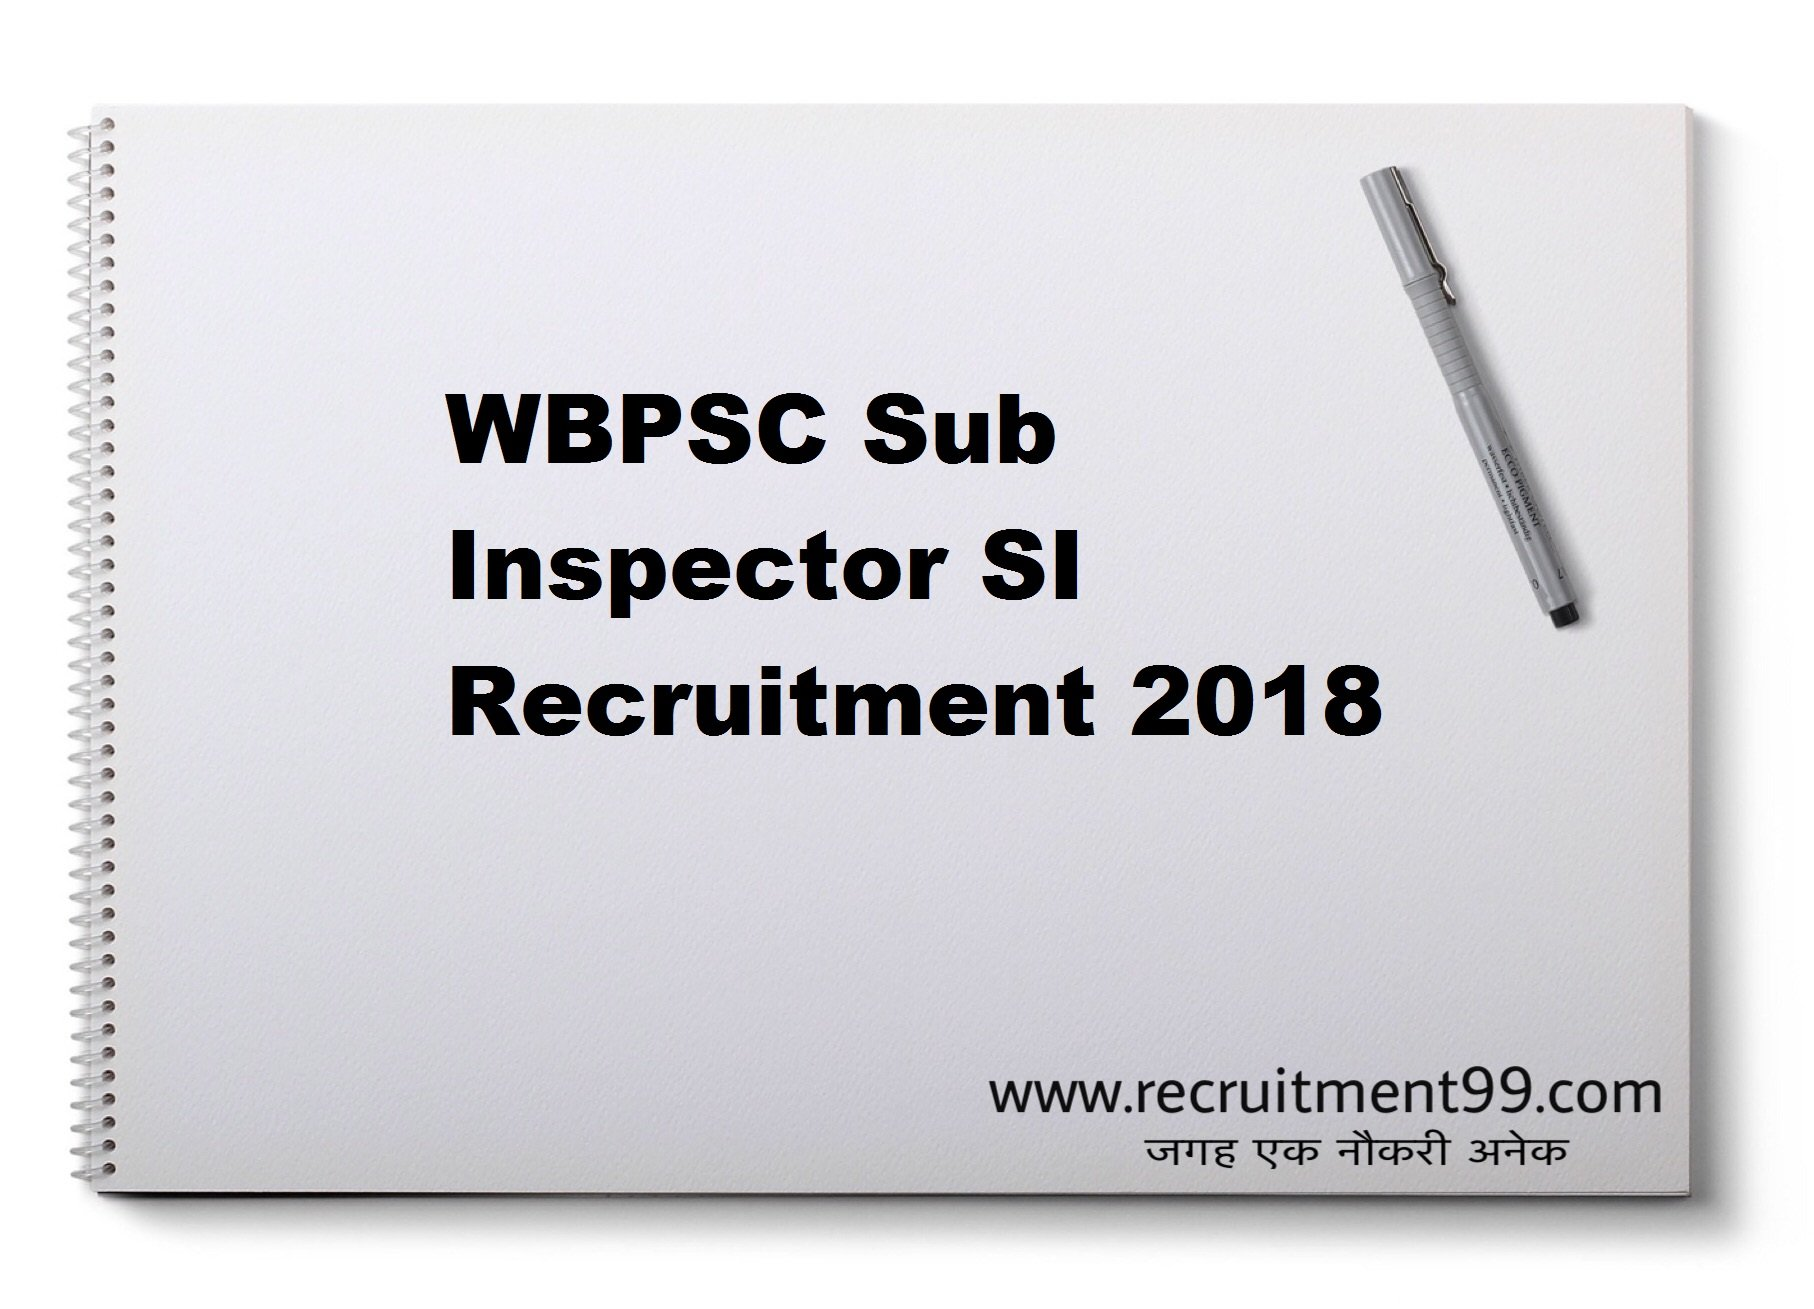 WBPSC Sub Inspector SI Recruitment Admit Card Result 2018